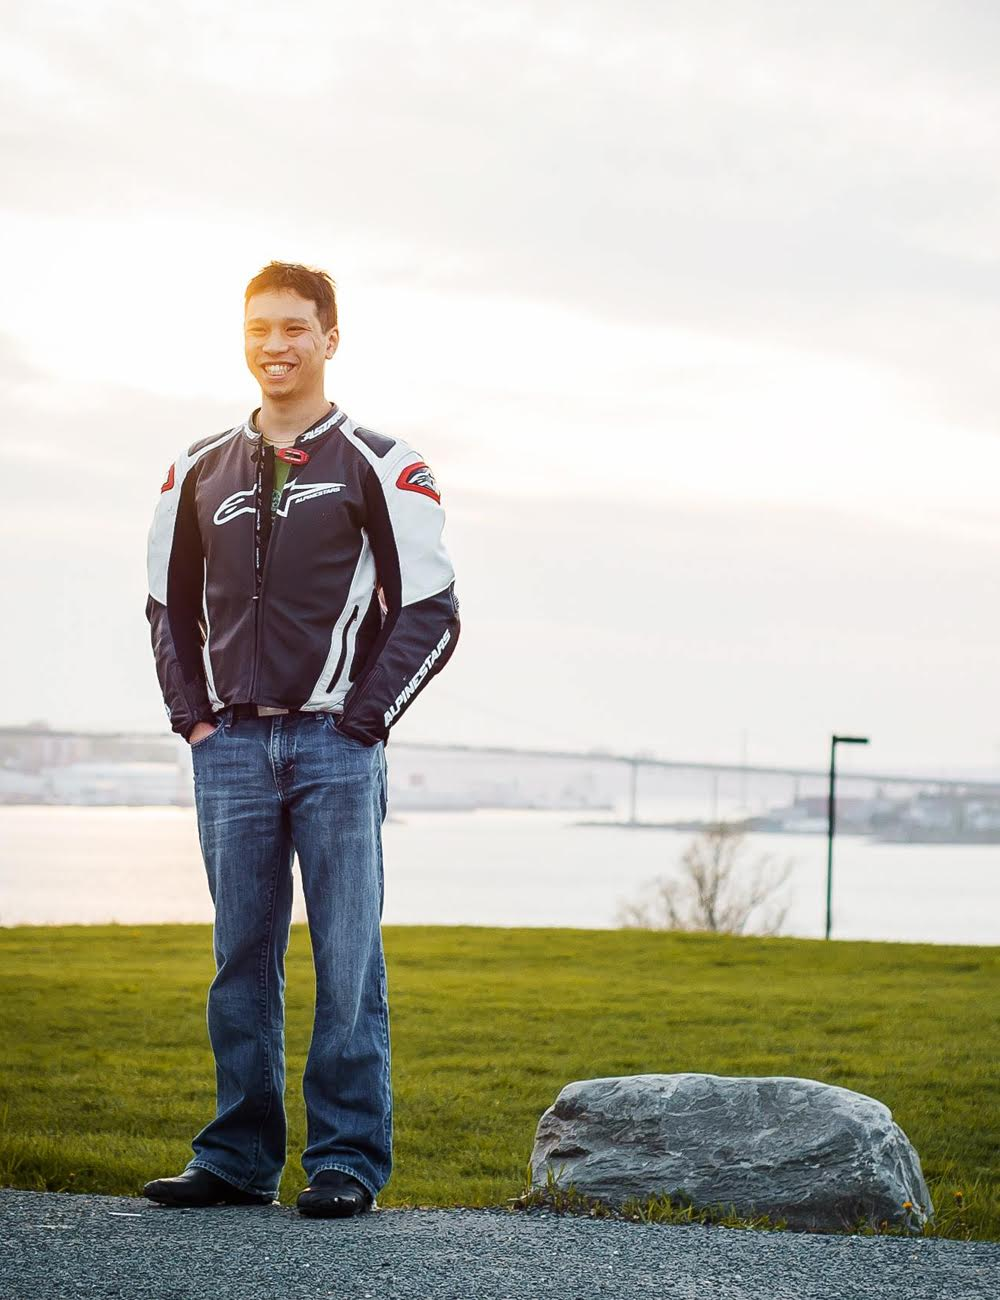 Man stands next to rock and grass in racing jacket.